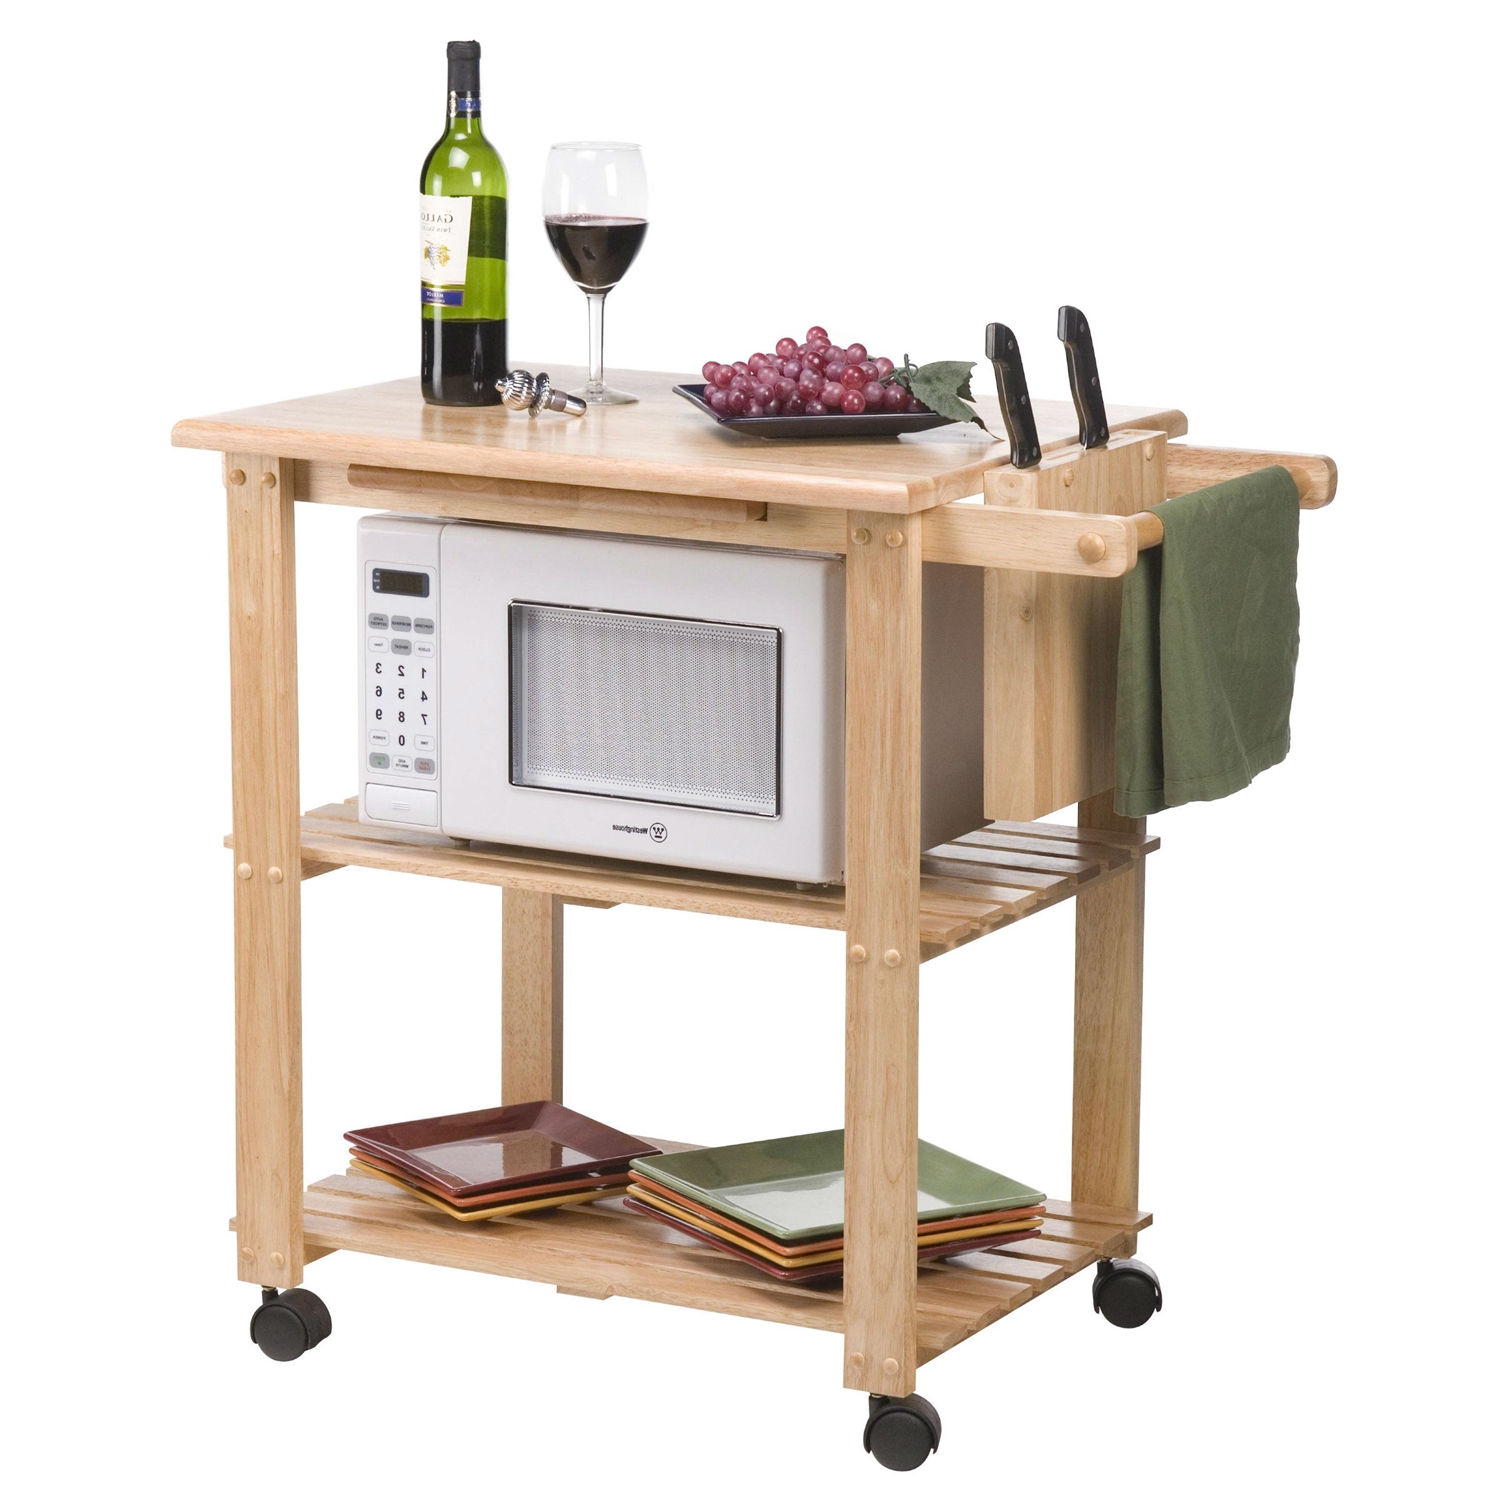 wooden kitchen cart cabinets miami solid wood utility microwave with pull out cutting board fastfurnishings com